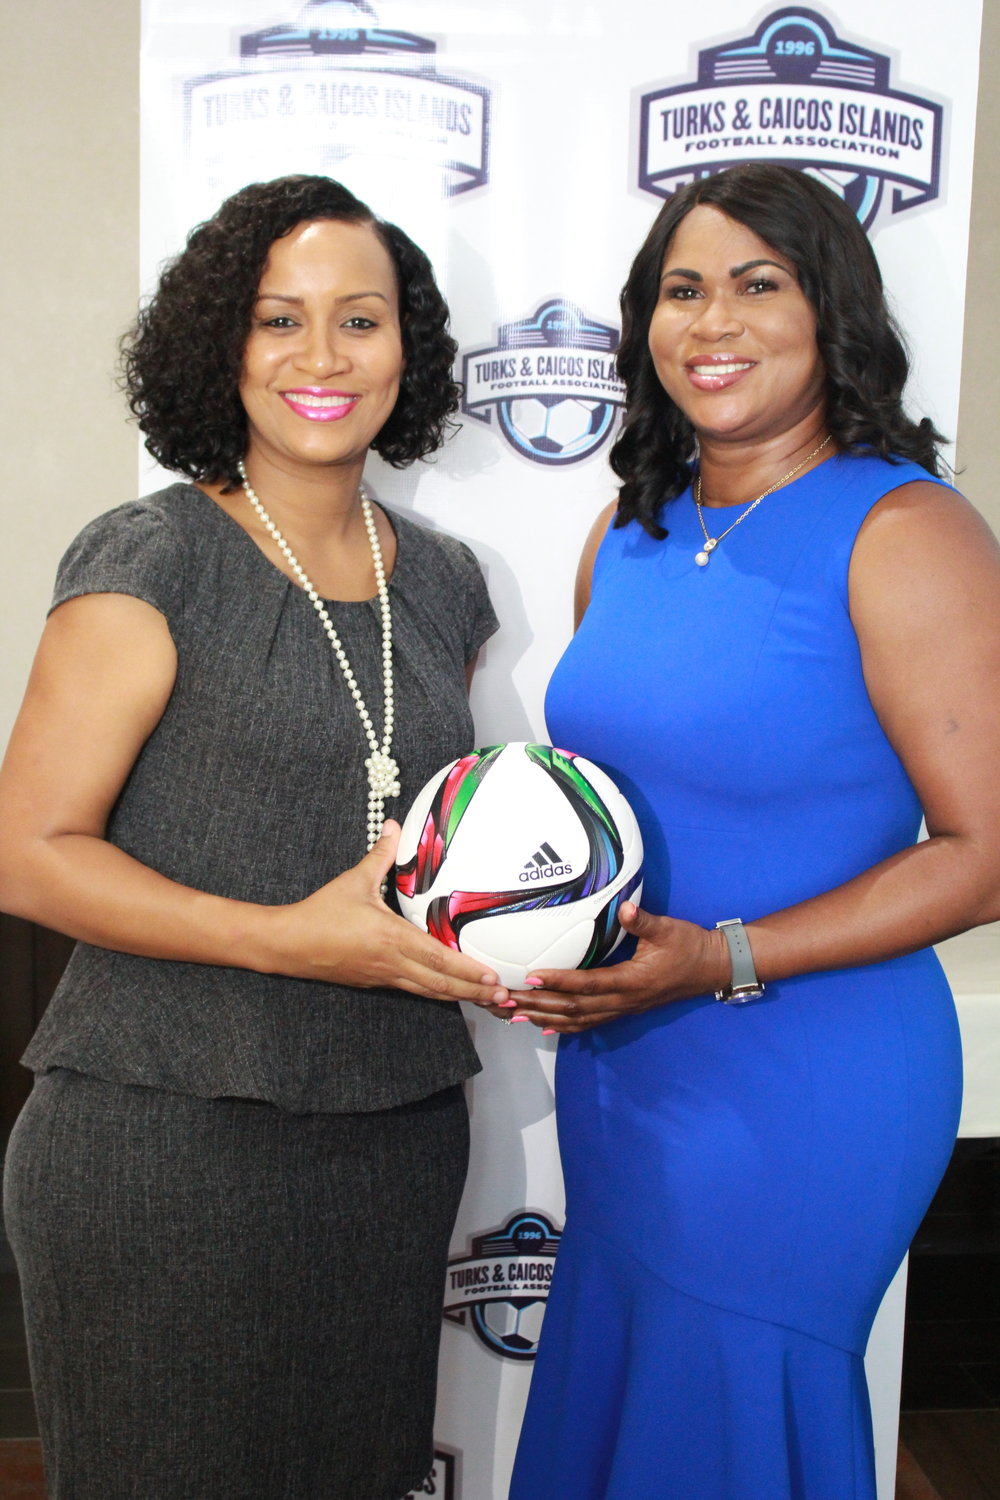 Deputy Governor Her Excellency, Hon. Anya Williams and President Fulford